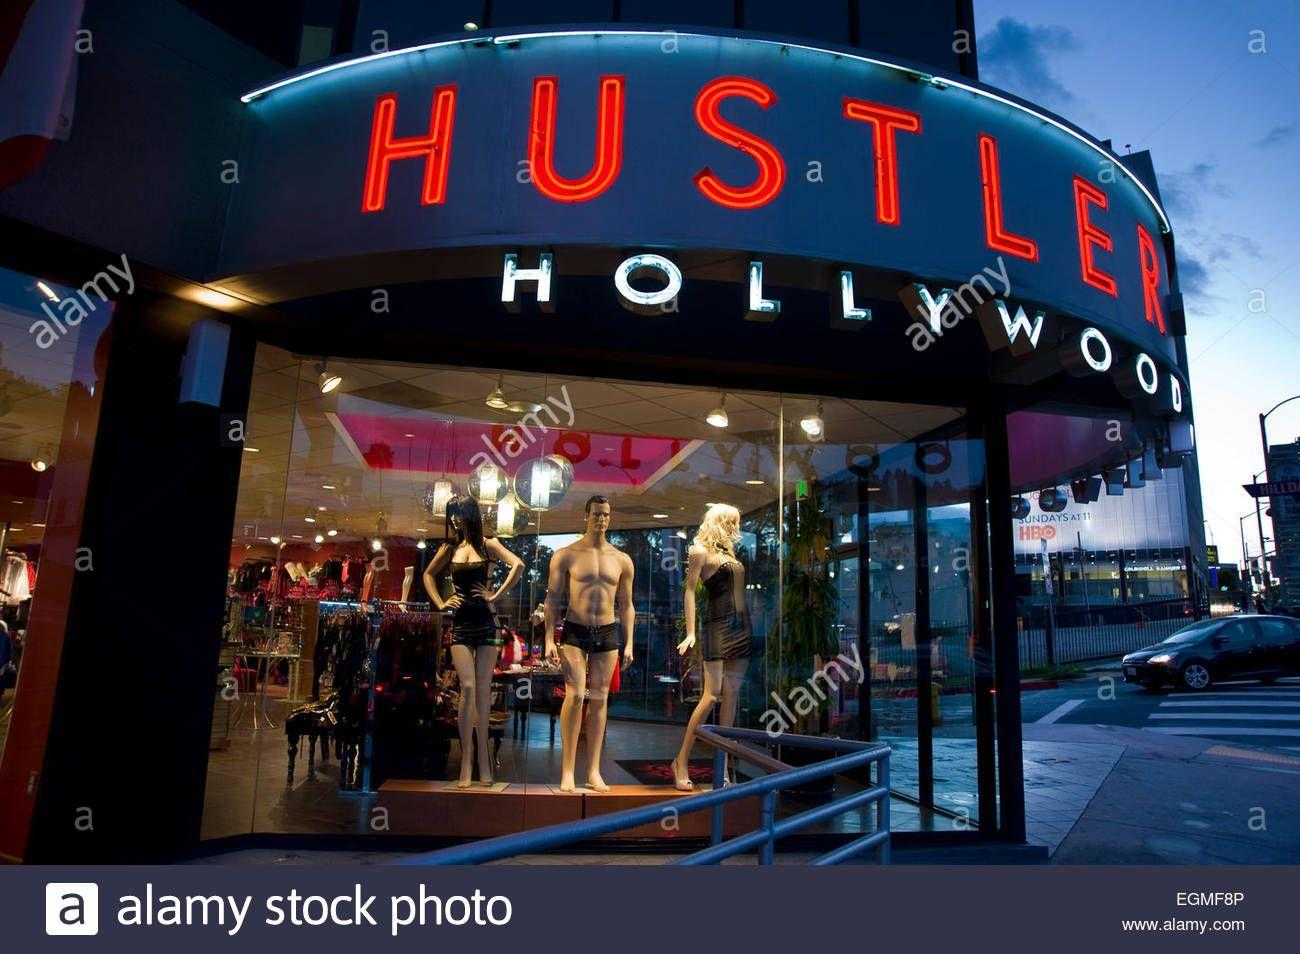 Hustler store sunset strip